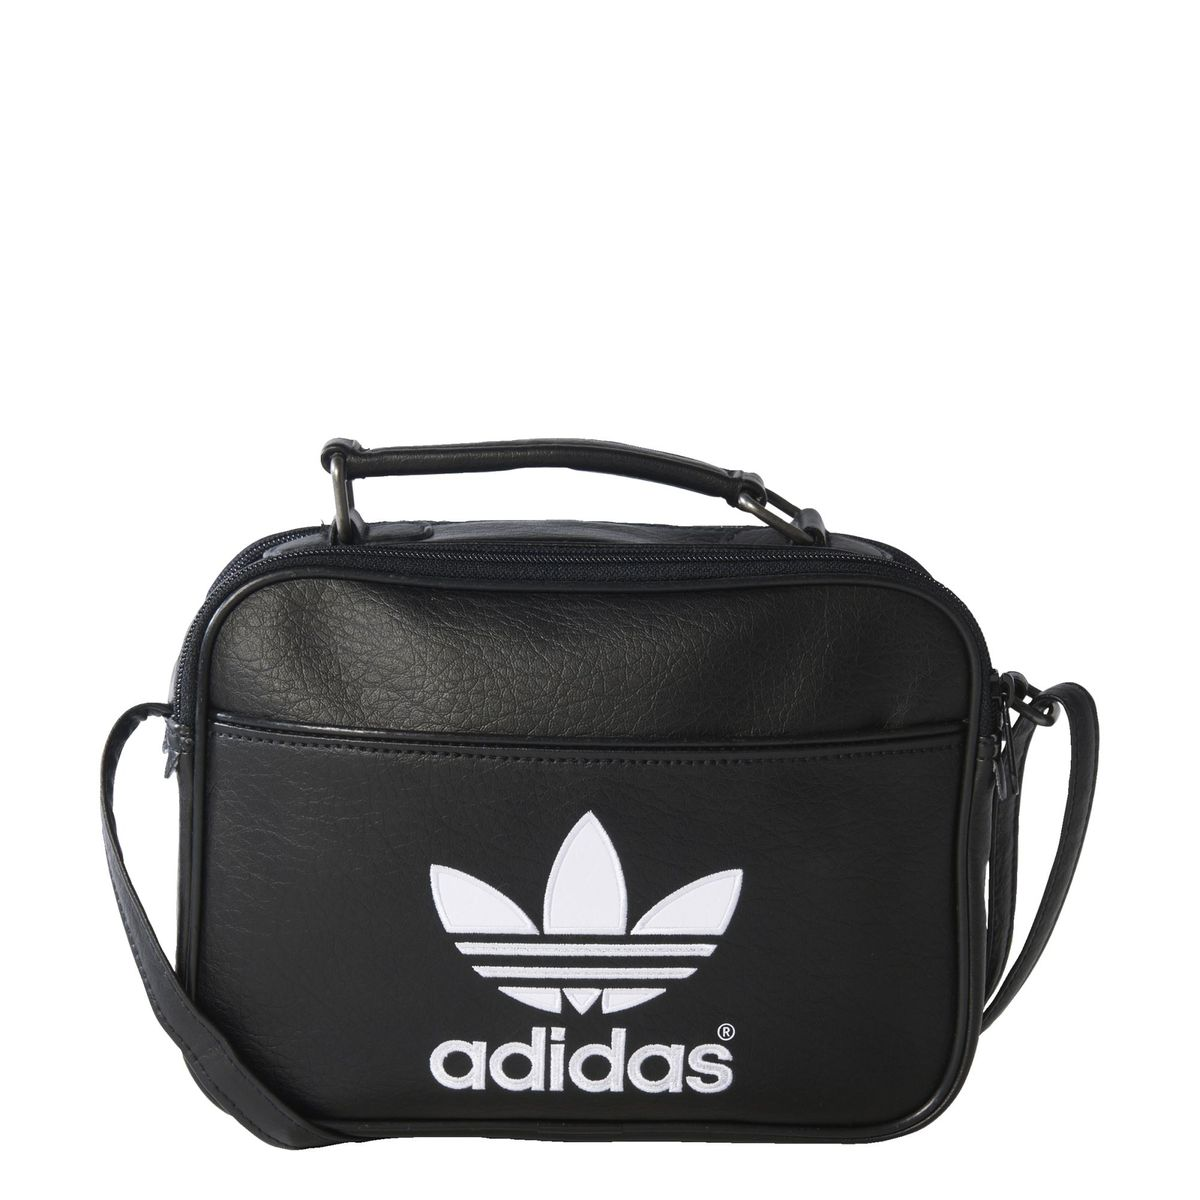 b4462c37a5 sac besace adidas,collection homme